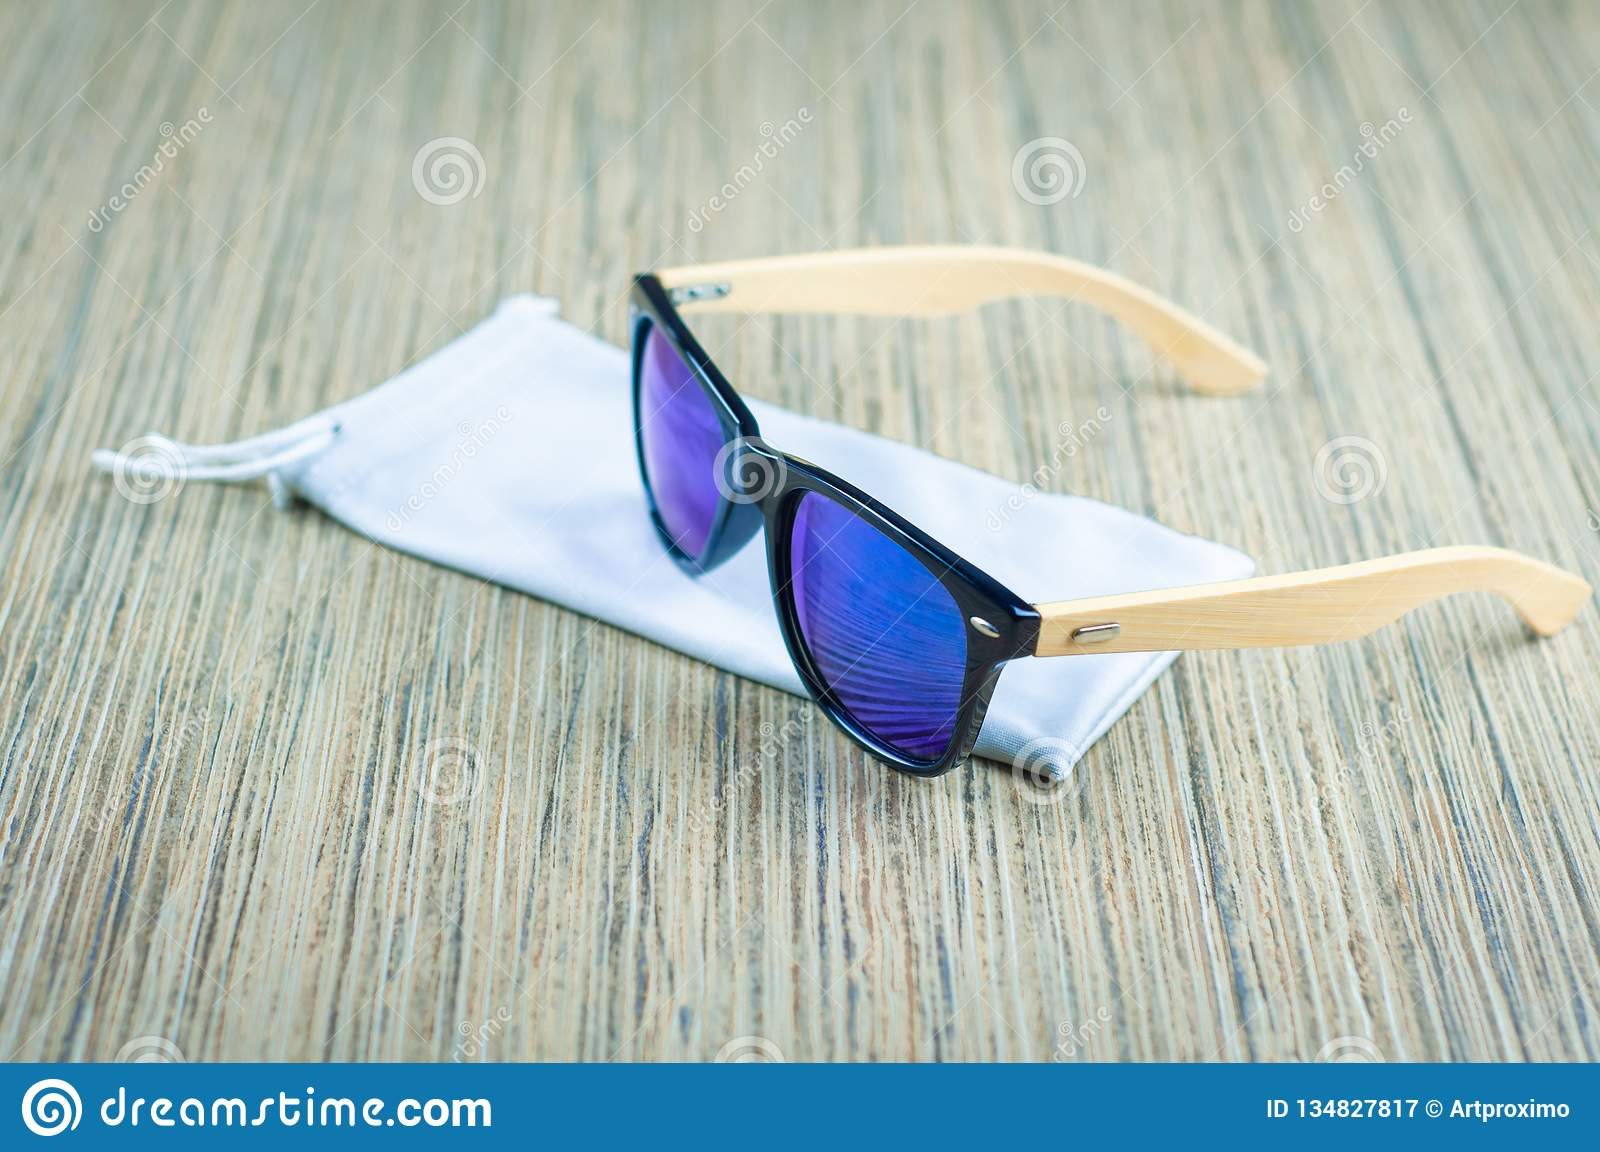 Fashionable blue sunglasses in a rag cover are wooden on the table